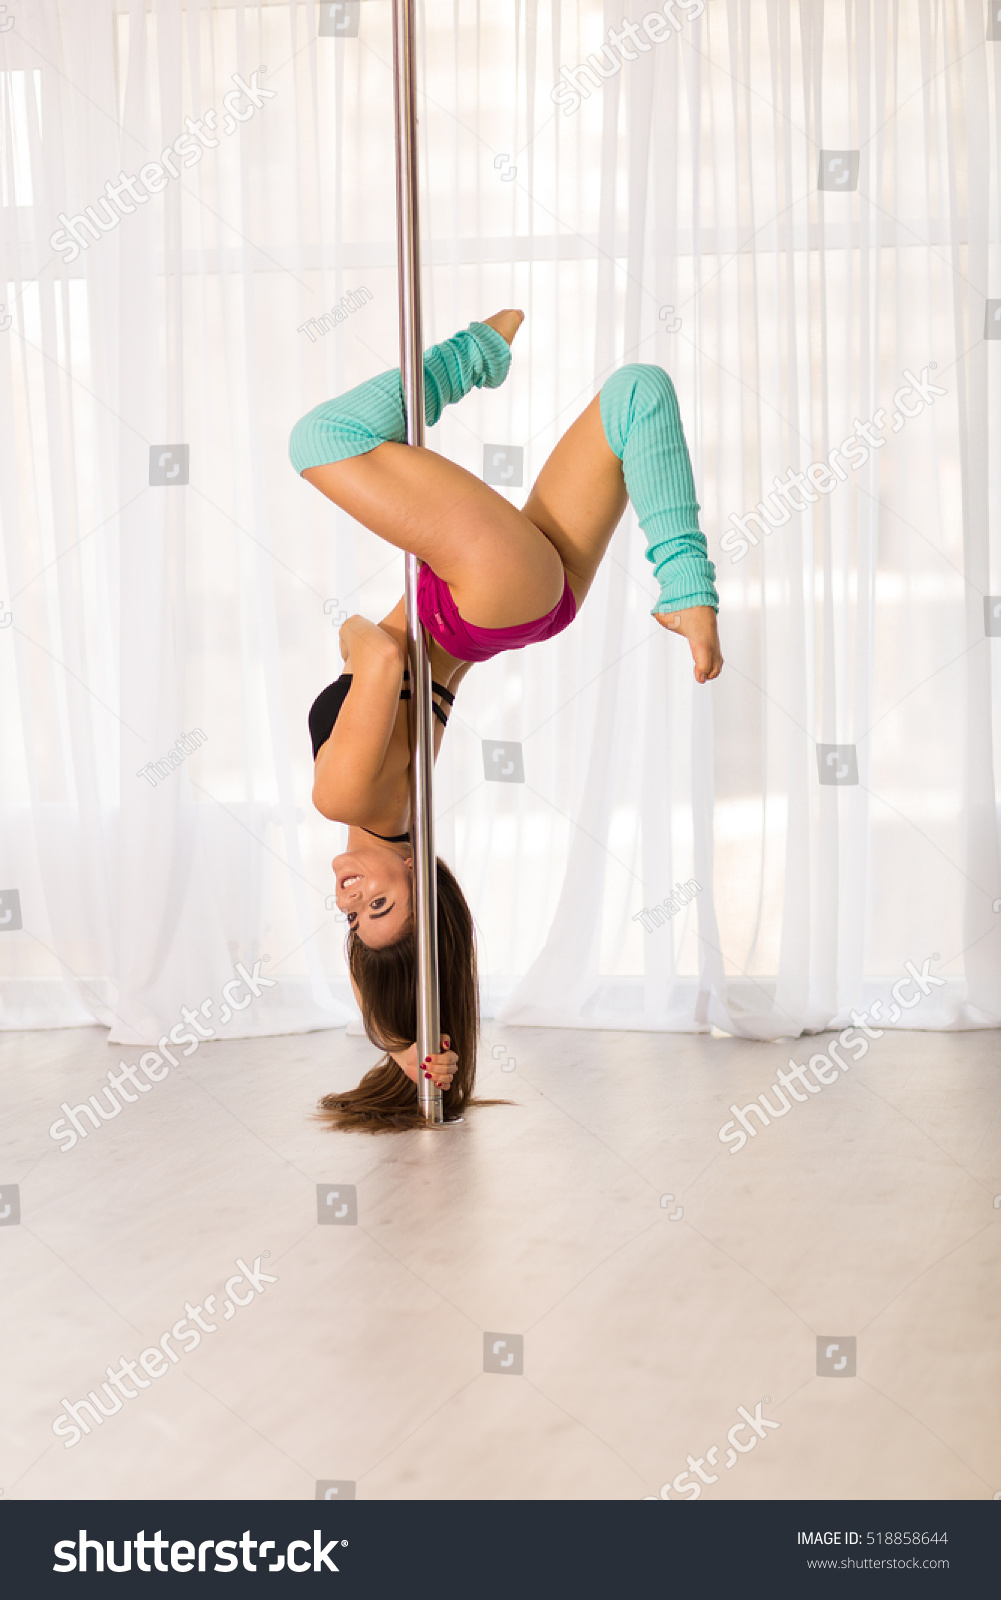 Pretty Pole Dancer Working Out Studio Stock Photo ...